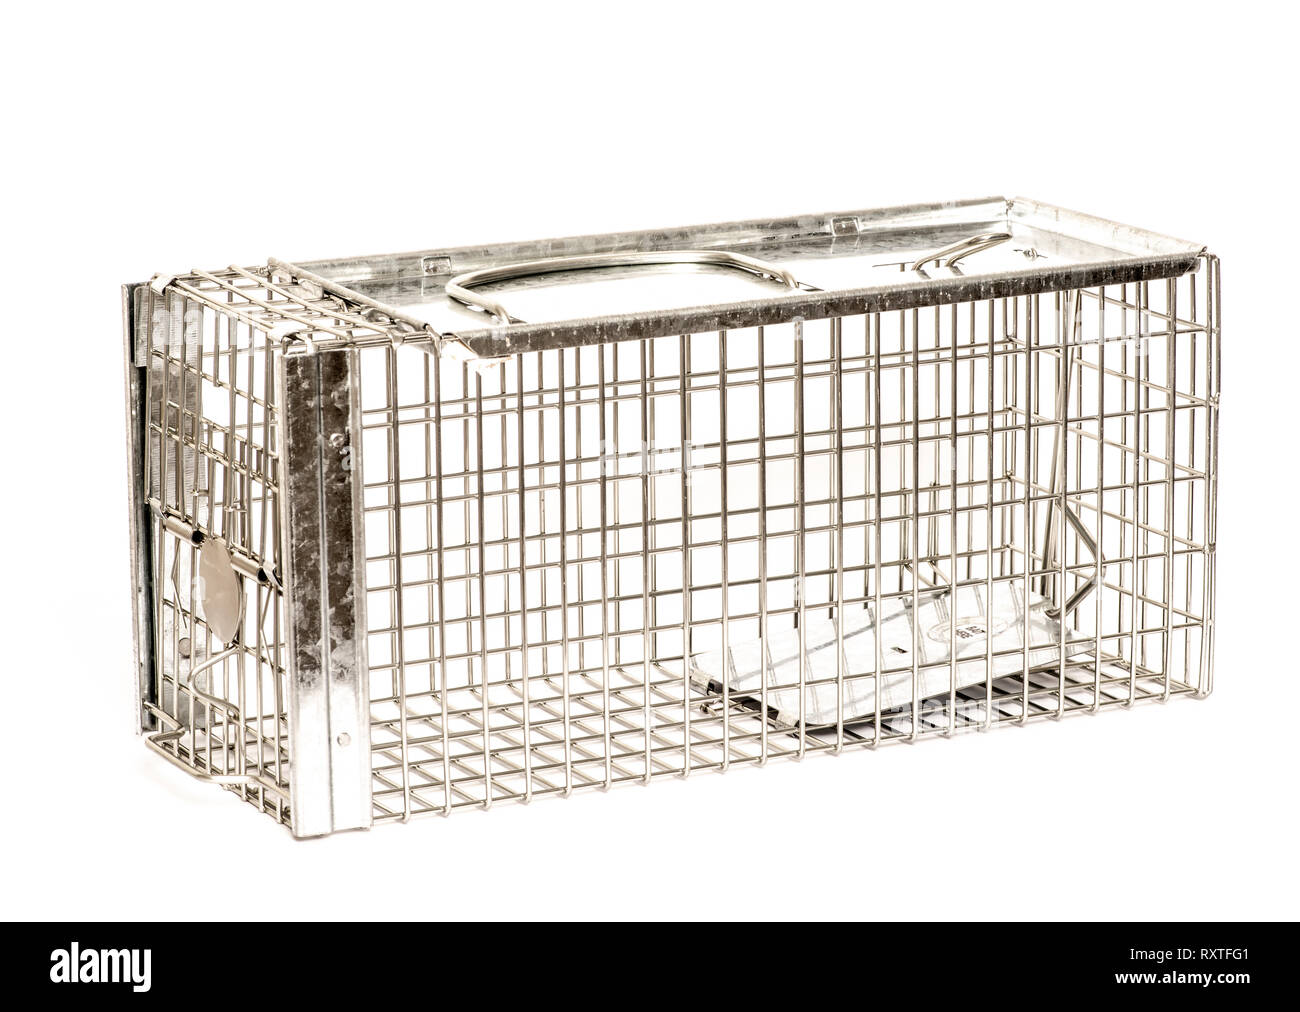 Humane rat trap made of galvanised steel mesh on white background. Closed - Stock Image